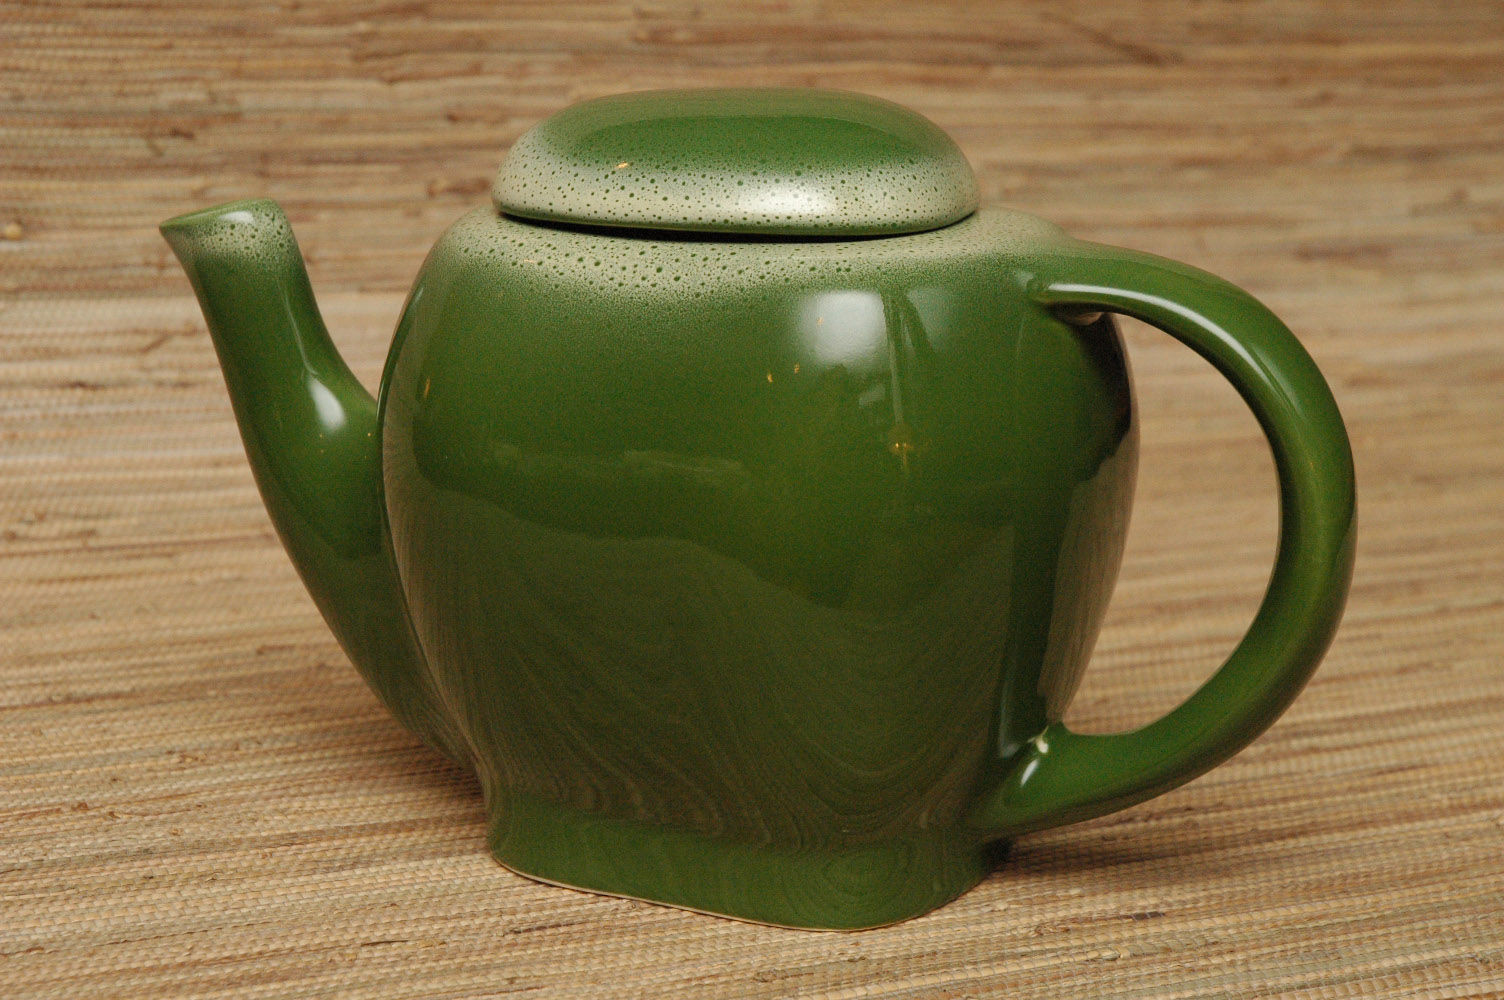 Tamac teapot in frosty pine